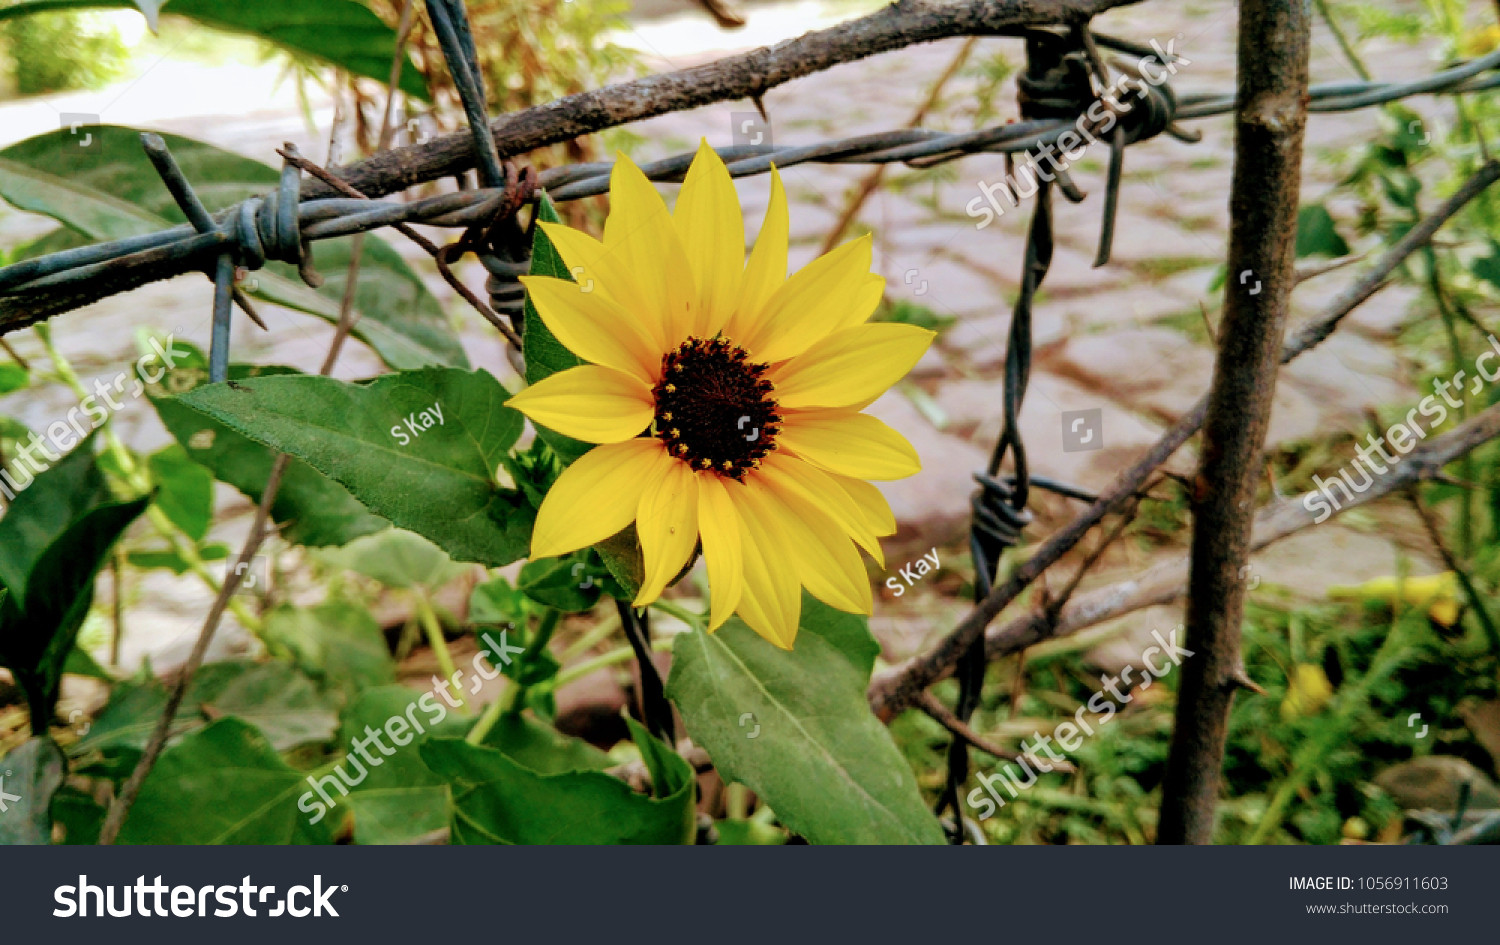 stock photo new beautiful sunflower wallpaper this picture is good background wallpaper latest wallpaper